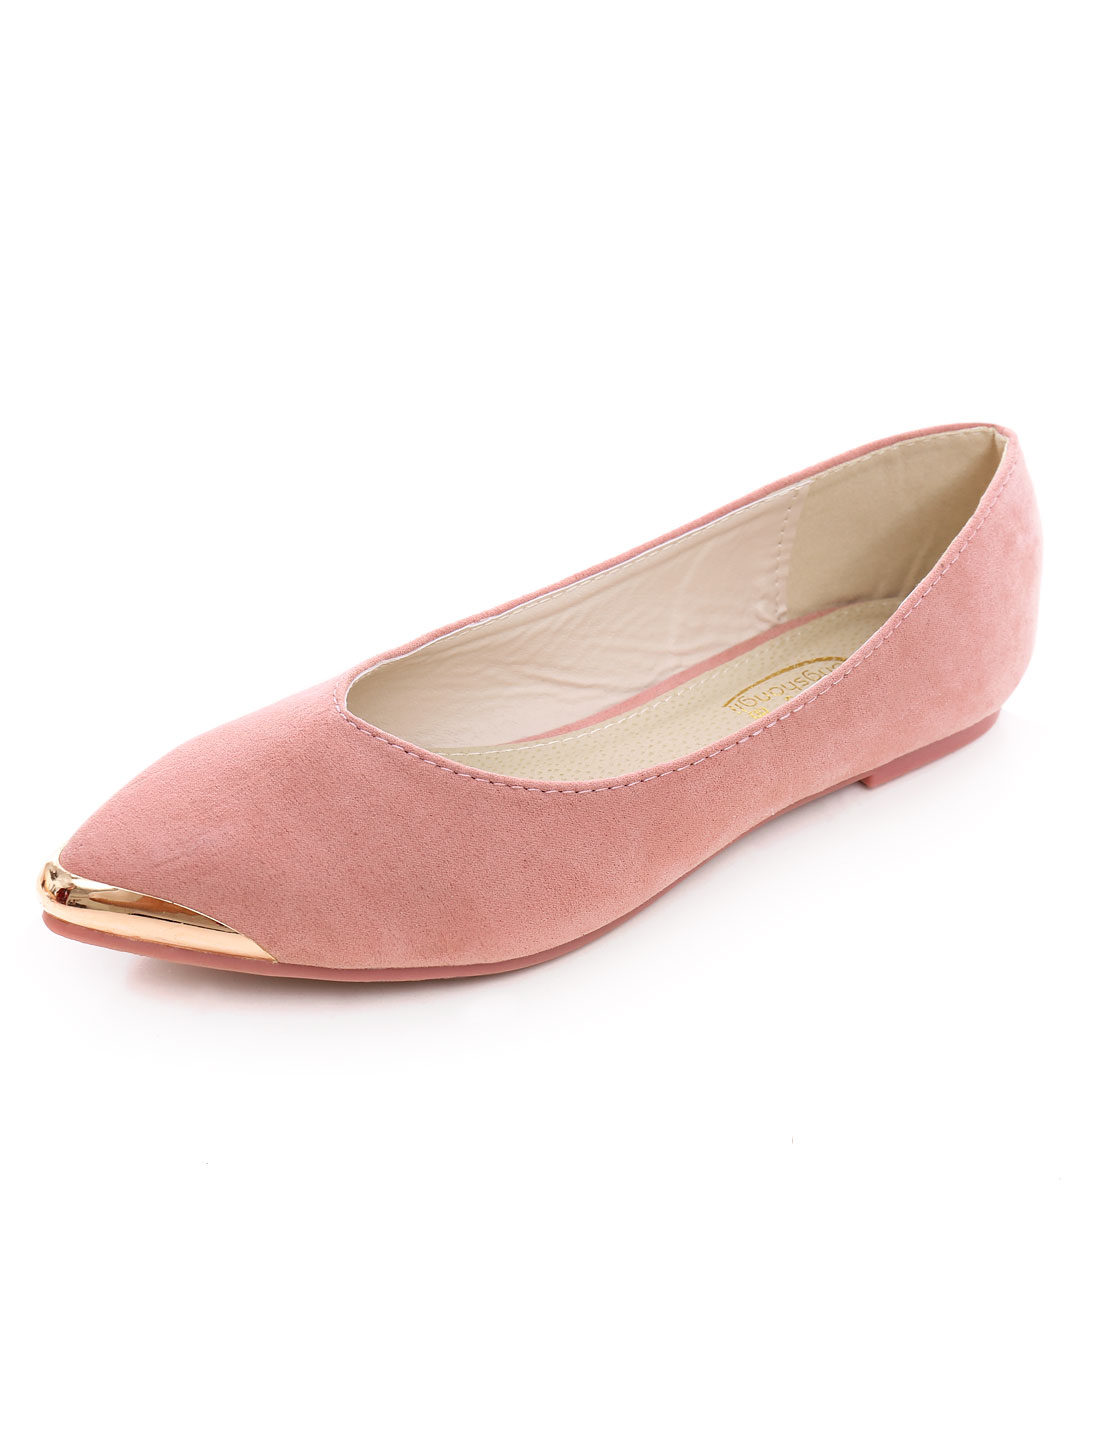 Woman Metallic Embellished Faux Suede V-Cut Vamp Point-Toe Flats Peach US 8.5